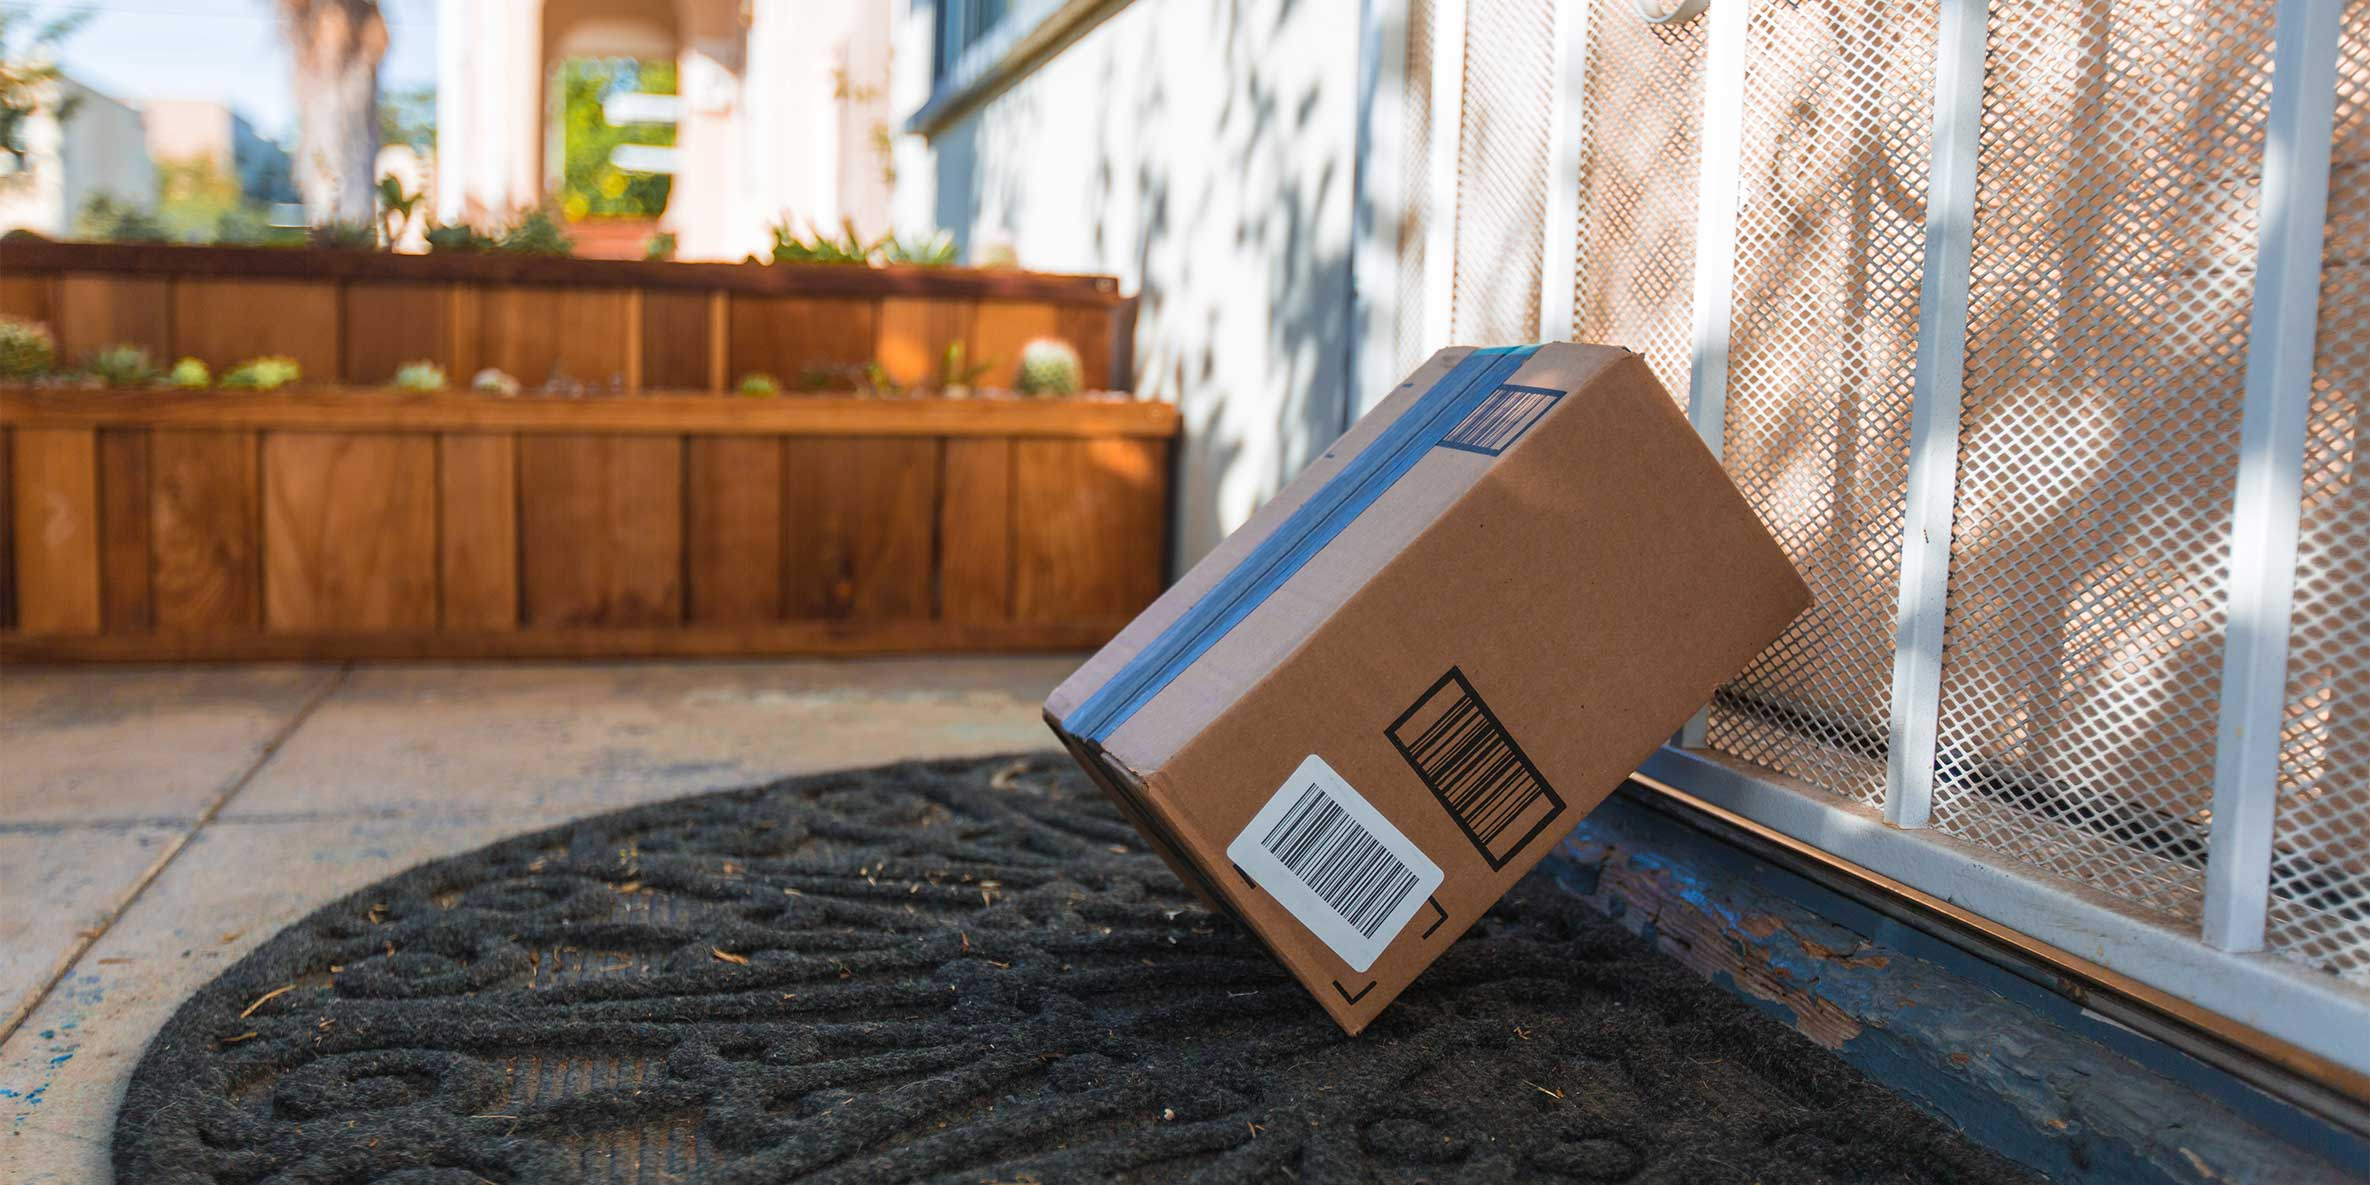 How to Protect Your Home Deliveries